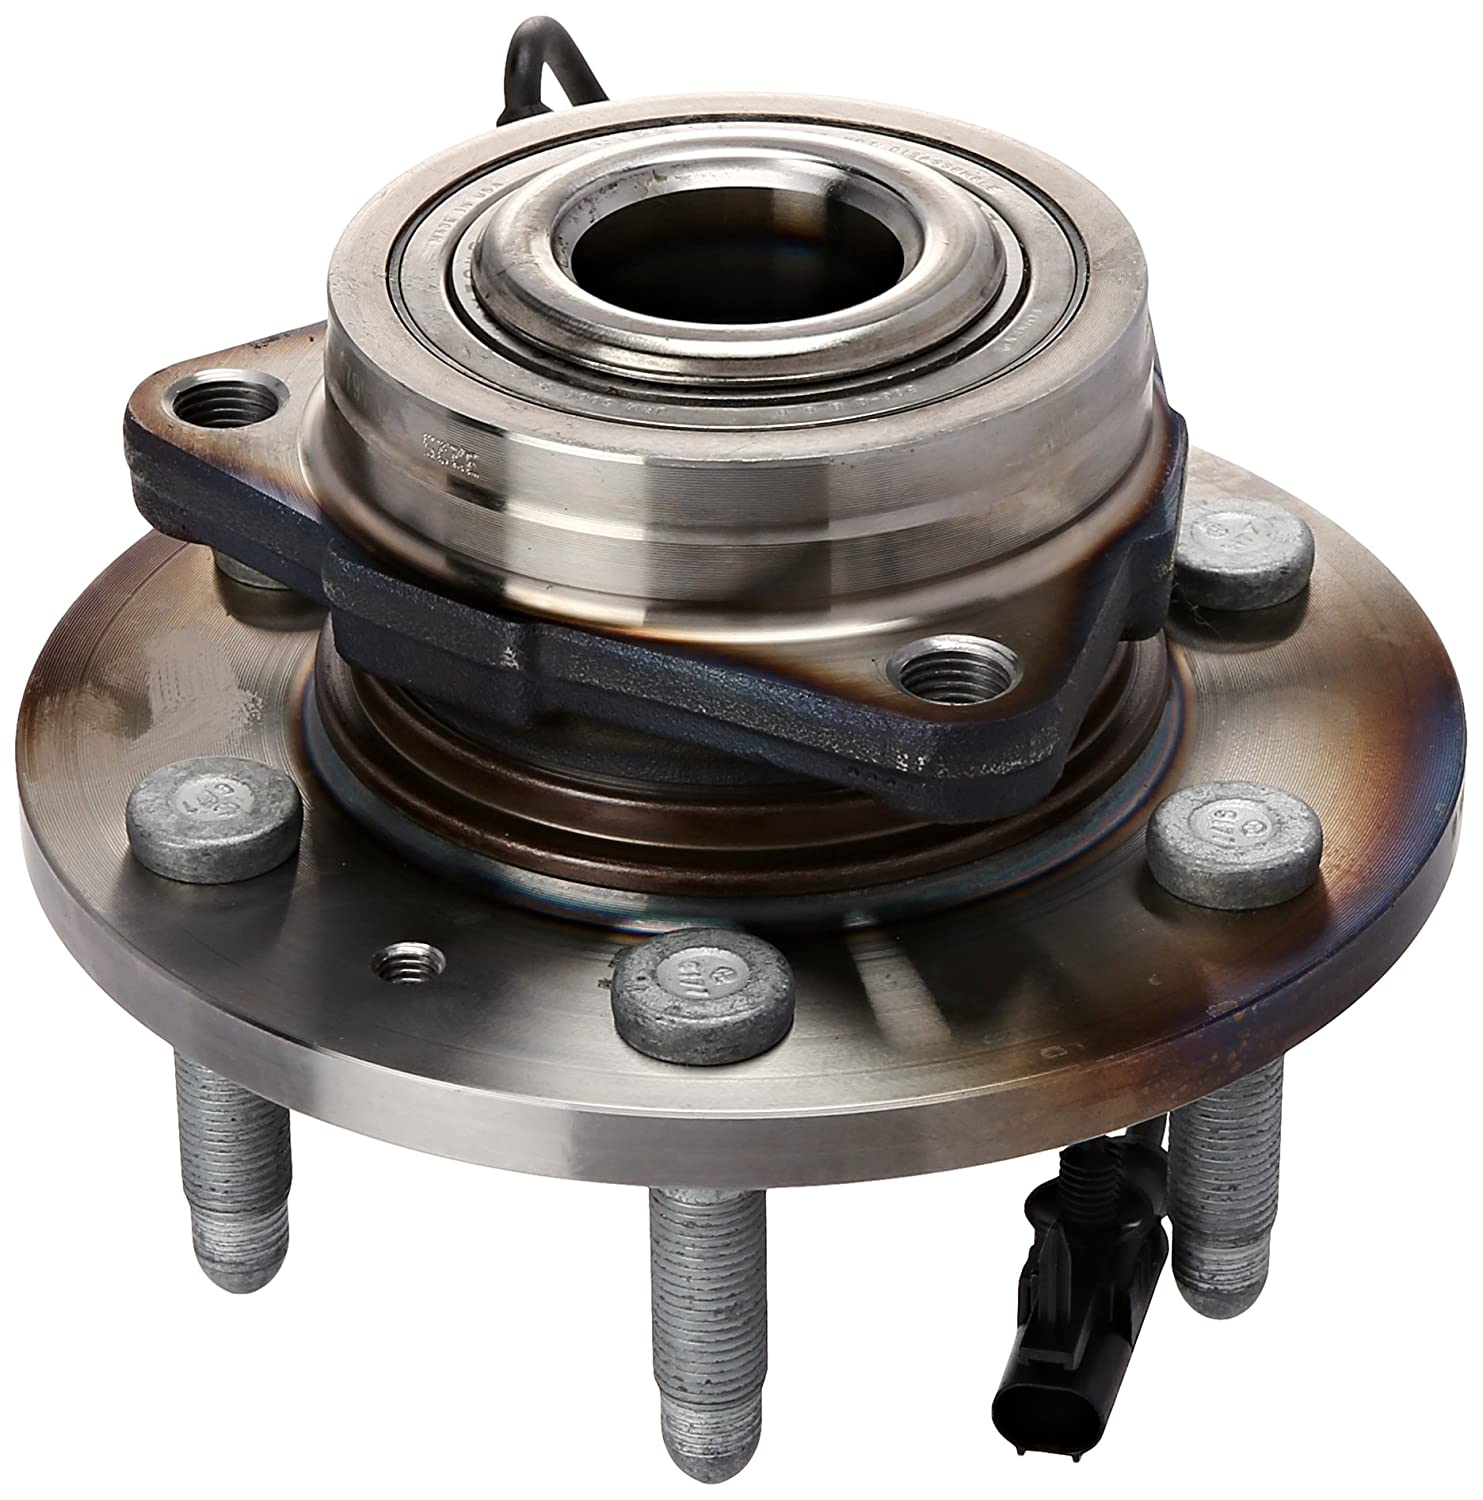 Timken sp500301 Front Wheel Bearing review